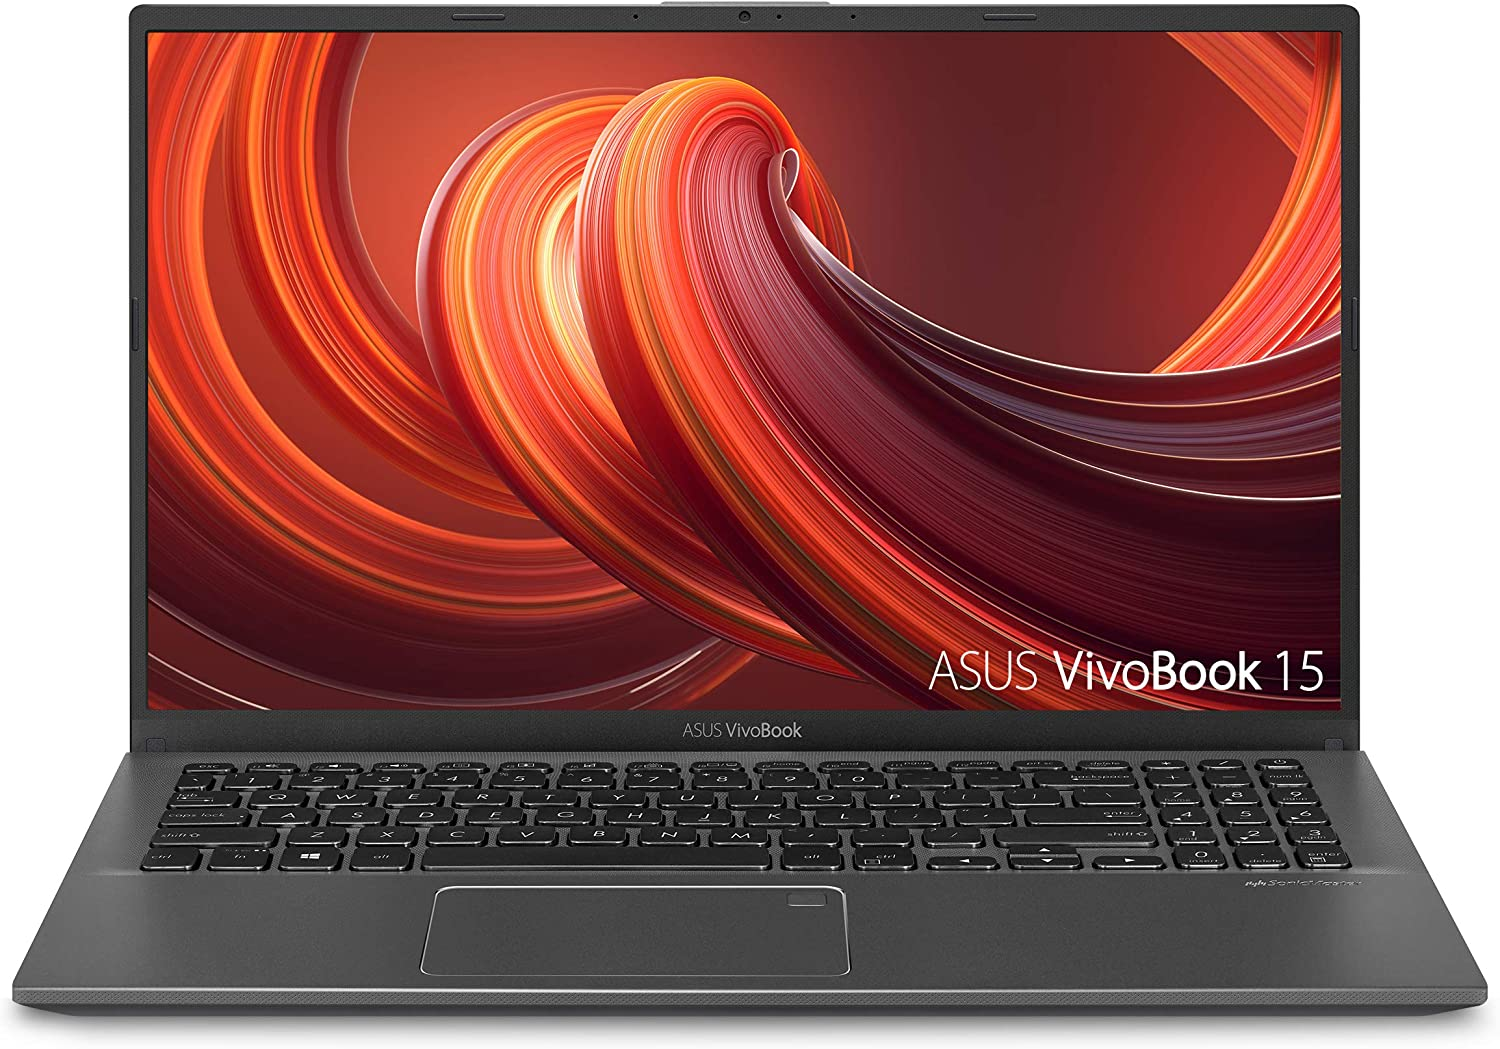 "ASUS VivoBook 15 Thin and Light Laptop, 15.6"" Full HD, AMD Quad Core R5-3500U CPU, 8GB DDR4 RAM, 256GB PCIe SSD, AMD Radeon Vega 8 Graphics, Windows ..."